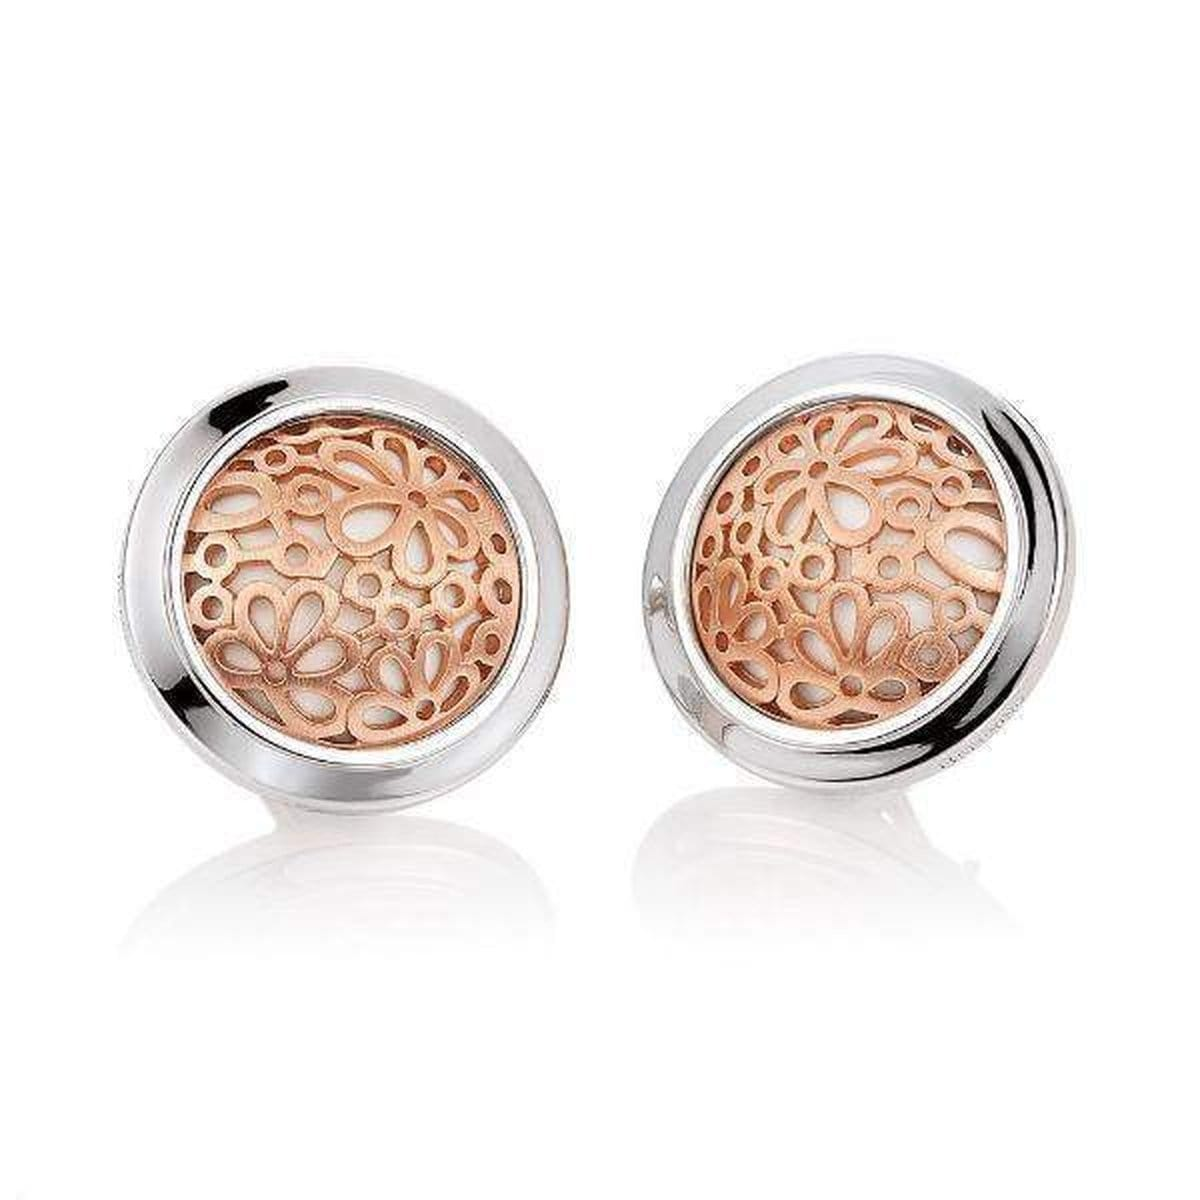 Rose Gold Plated Sterling Silver Earrings - 02/03678-Breuning-Renee Taylor Gallery